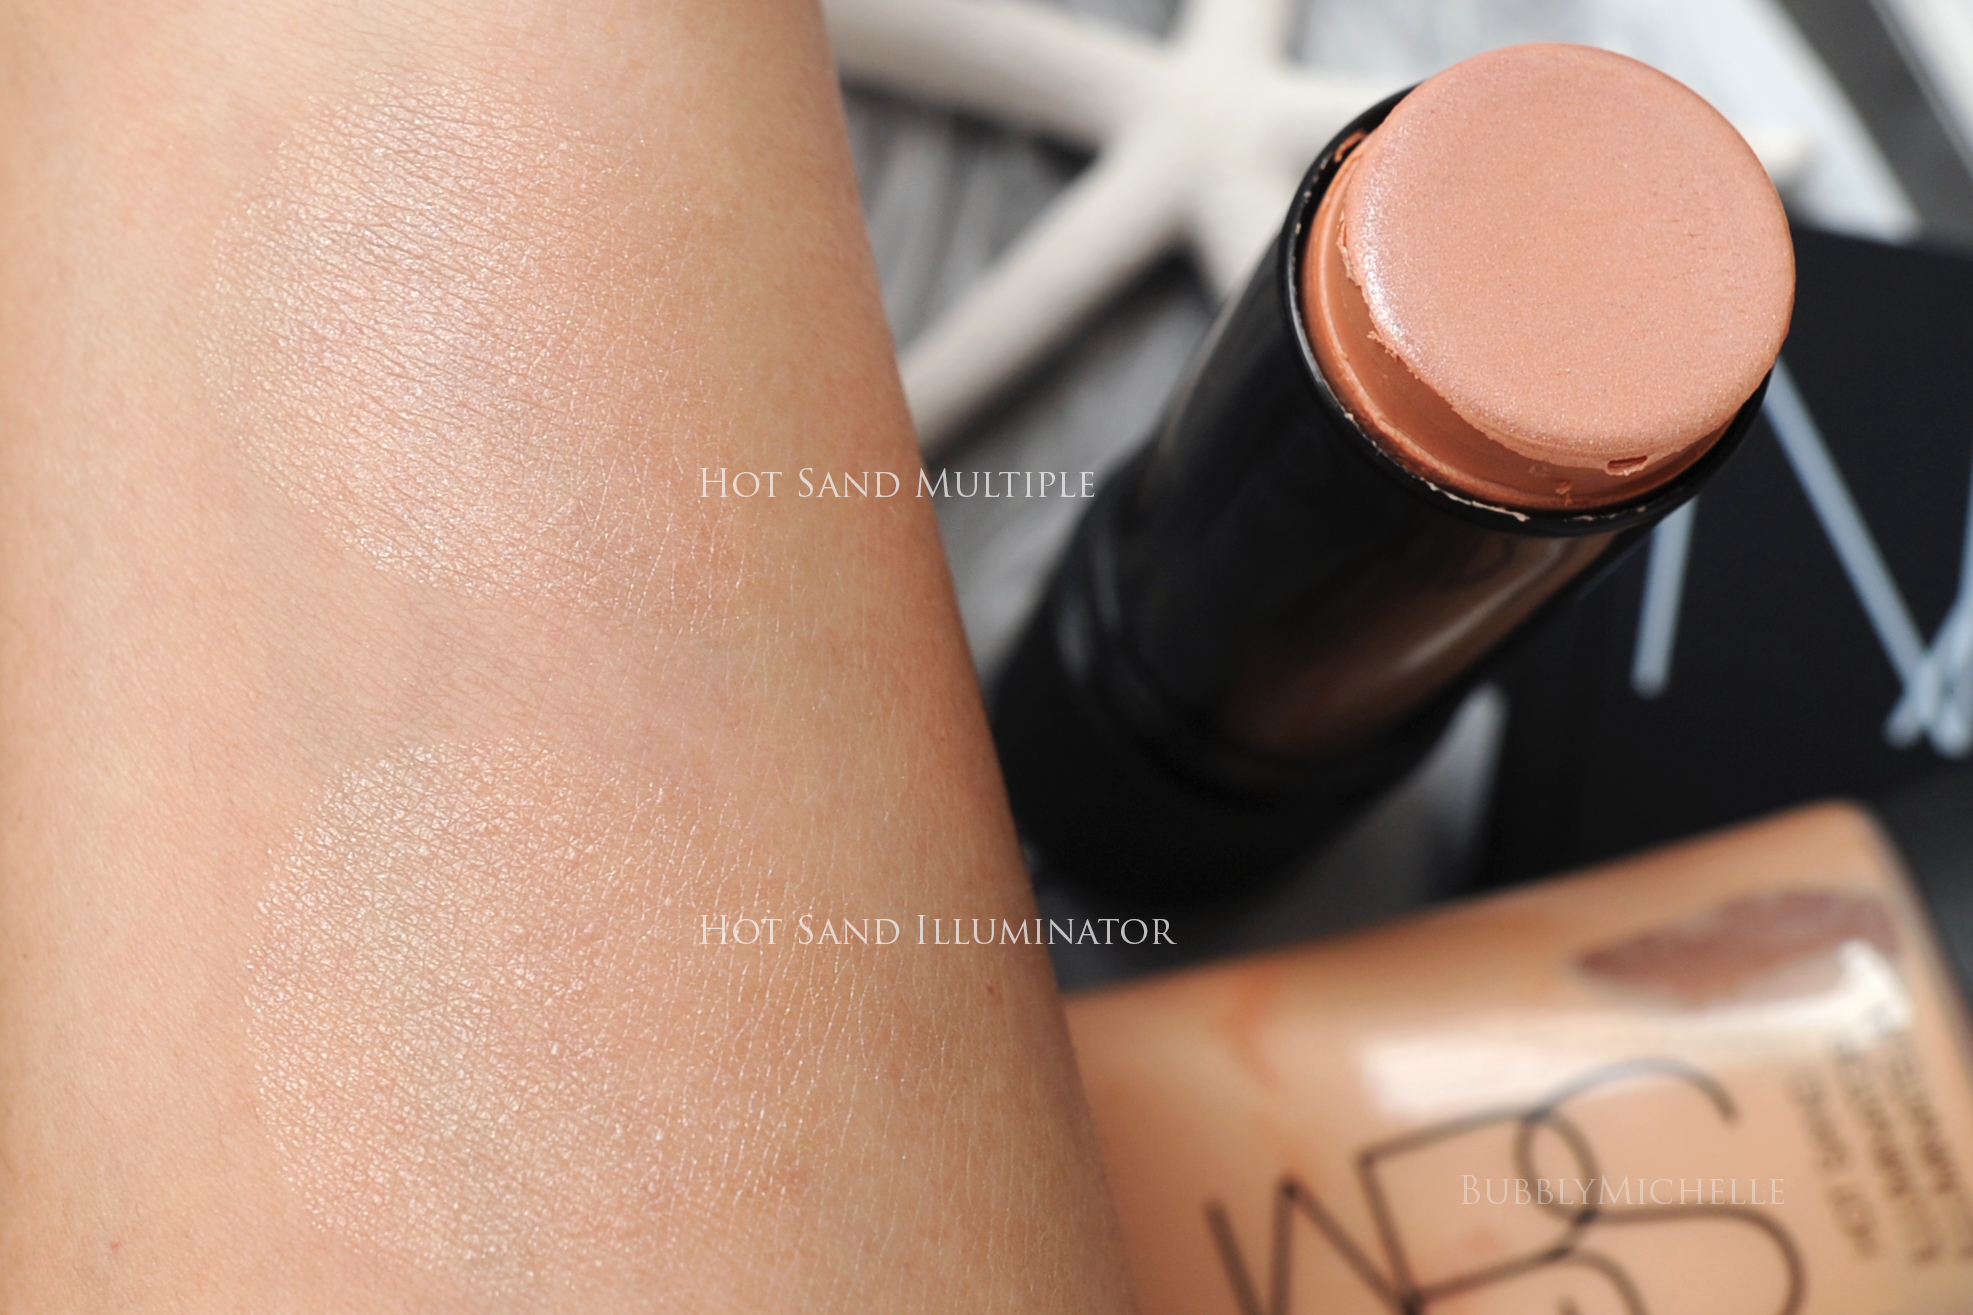 Nars Hot Sand Collection Review, Fotos farveprøver-6271